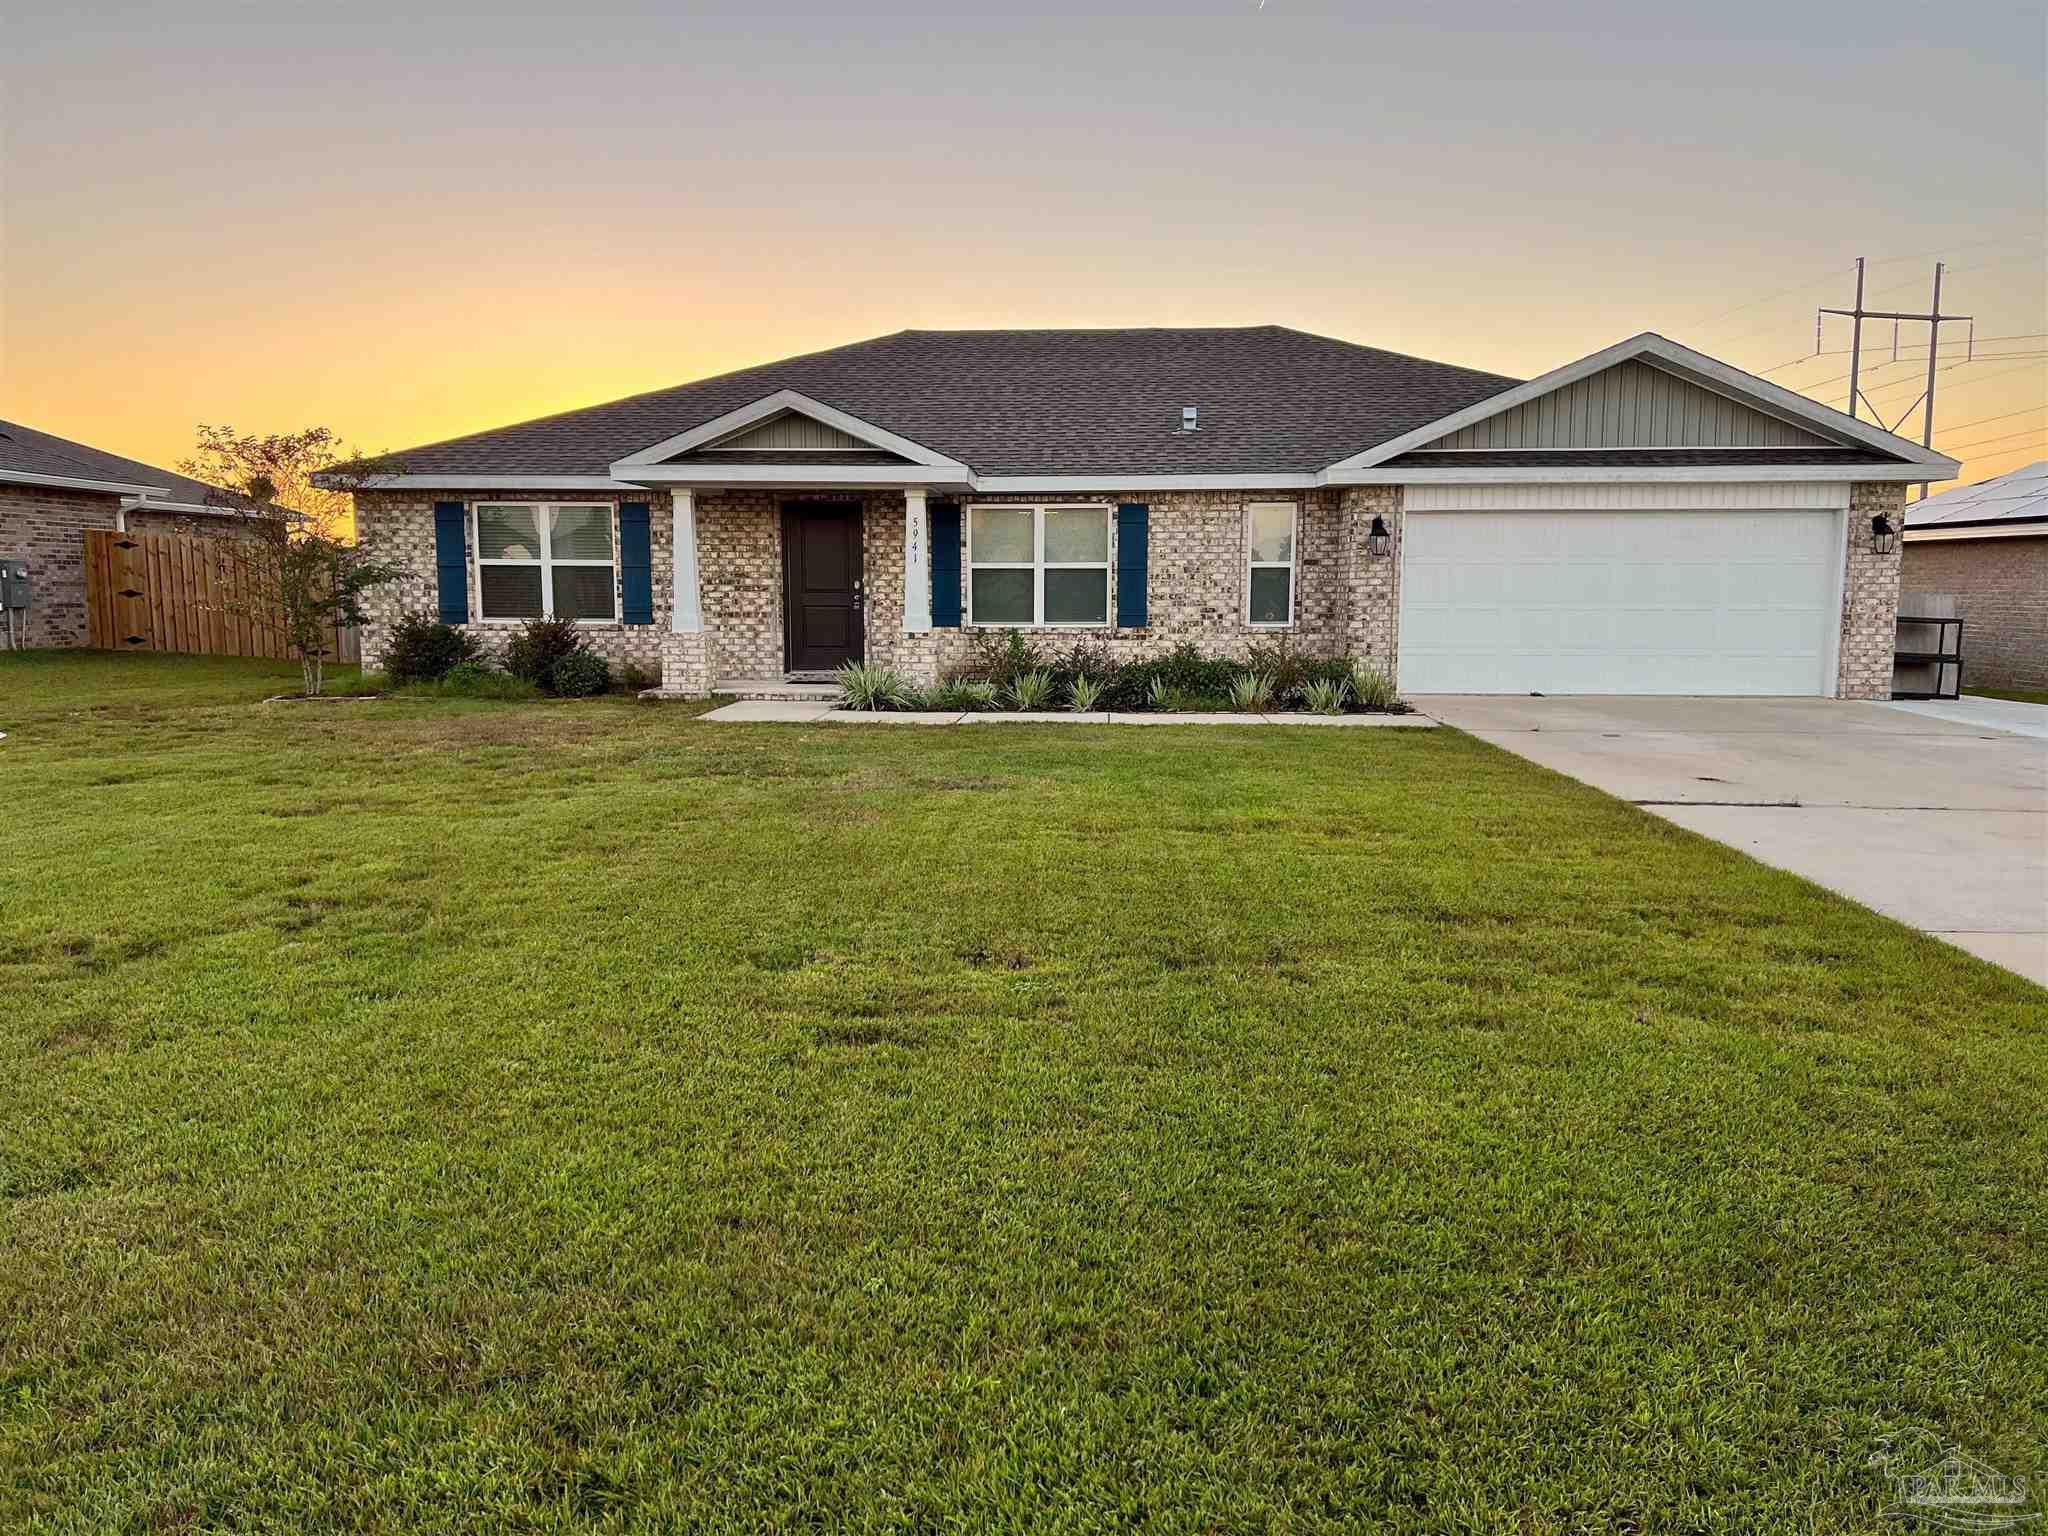 Welcome to Whisper Creek in Milton Florida. This home is ideal for anyone looking for new construction but doesn't have the time to wait for a new home to be built. This 4 bed | 2 bath home features over 2000 sqft of living space and construction was completed in November of 2019. Inside this open concept home you'll enjoy laminate wood floors and plush carpet in the bedrooms. This home also features vaulted ceilings in the main living area; making this home feel even more spacious. This area has beautiful sunsets that you can gaze upon from the covered back porch and relax on your quarter acre of heaven. During ownership the seller has extended the concrete on the front porch and extended the driveway. Enjoy community features such as underground utilities, good schools,  shopping, and a quick drive to Whiting Field.